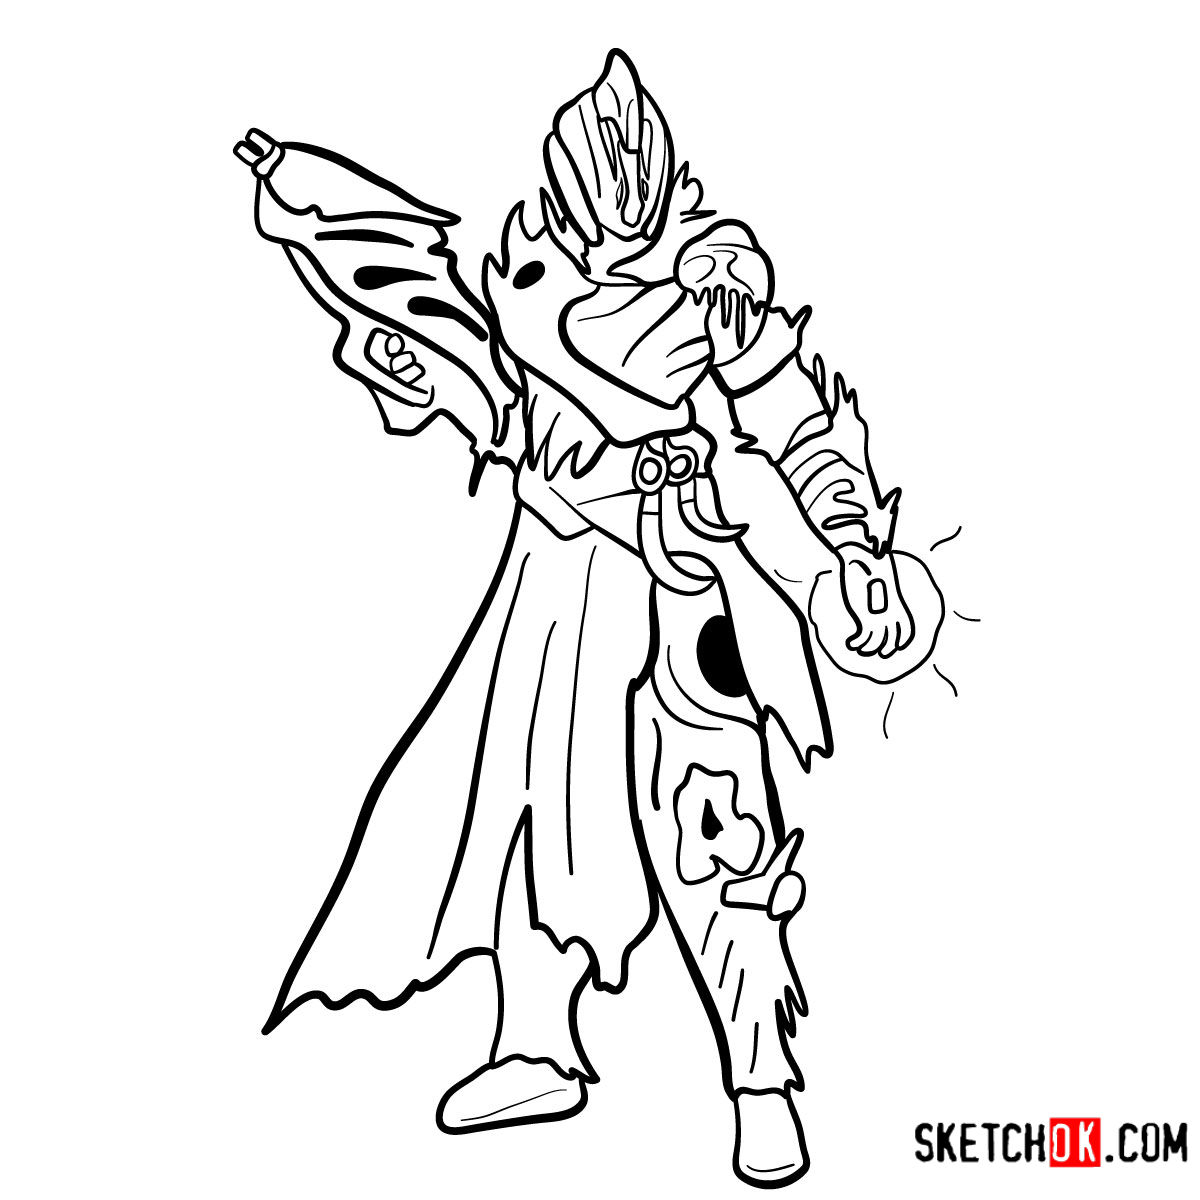 Collection of Warlock clipart.